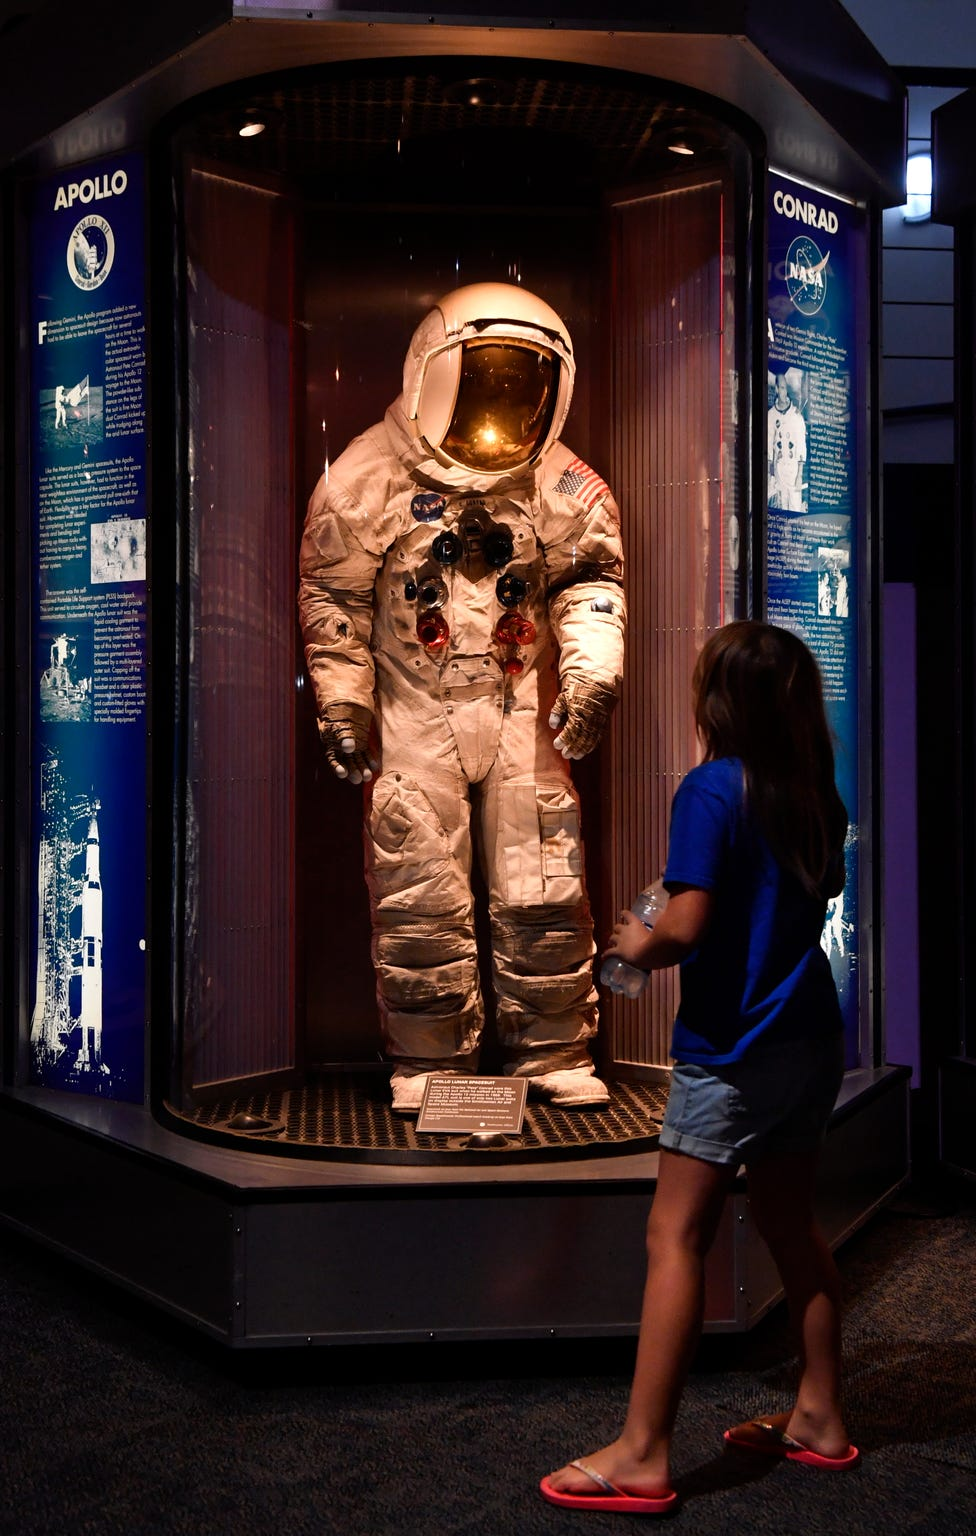 "Eisley Jones, 8, of Seabrook studies the spacesuit worn on the moon by Astronaut Charles ""Pete"" Conrad during Apollo 12 in 1969. On exhibit in the Space Center Houston Astronaut Gallery, It is one of two Lunar suits on display outside of the Smithsonian Air and Space Museum. Eisley was visiting the museum with her father Tyler and brother Atticus."